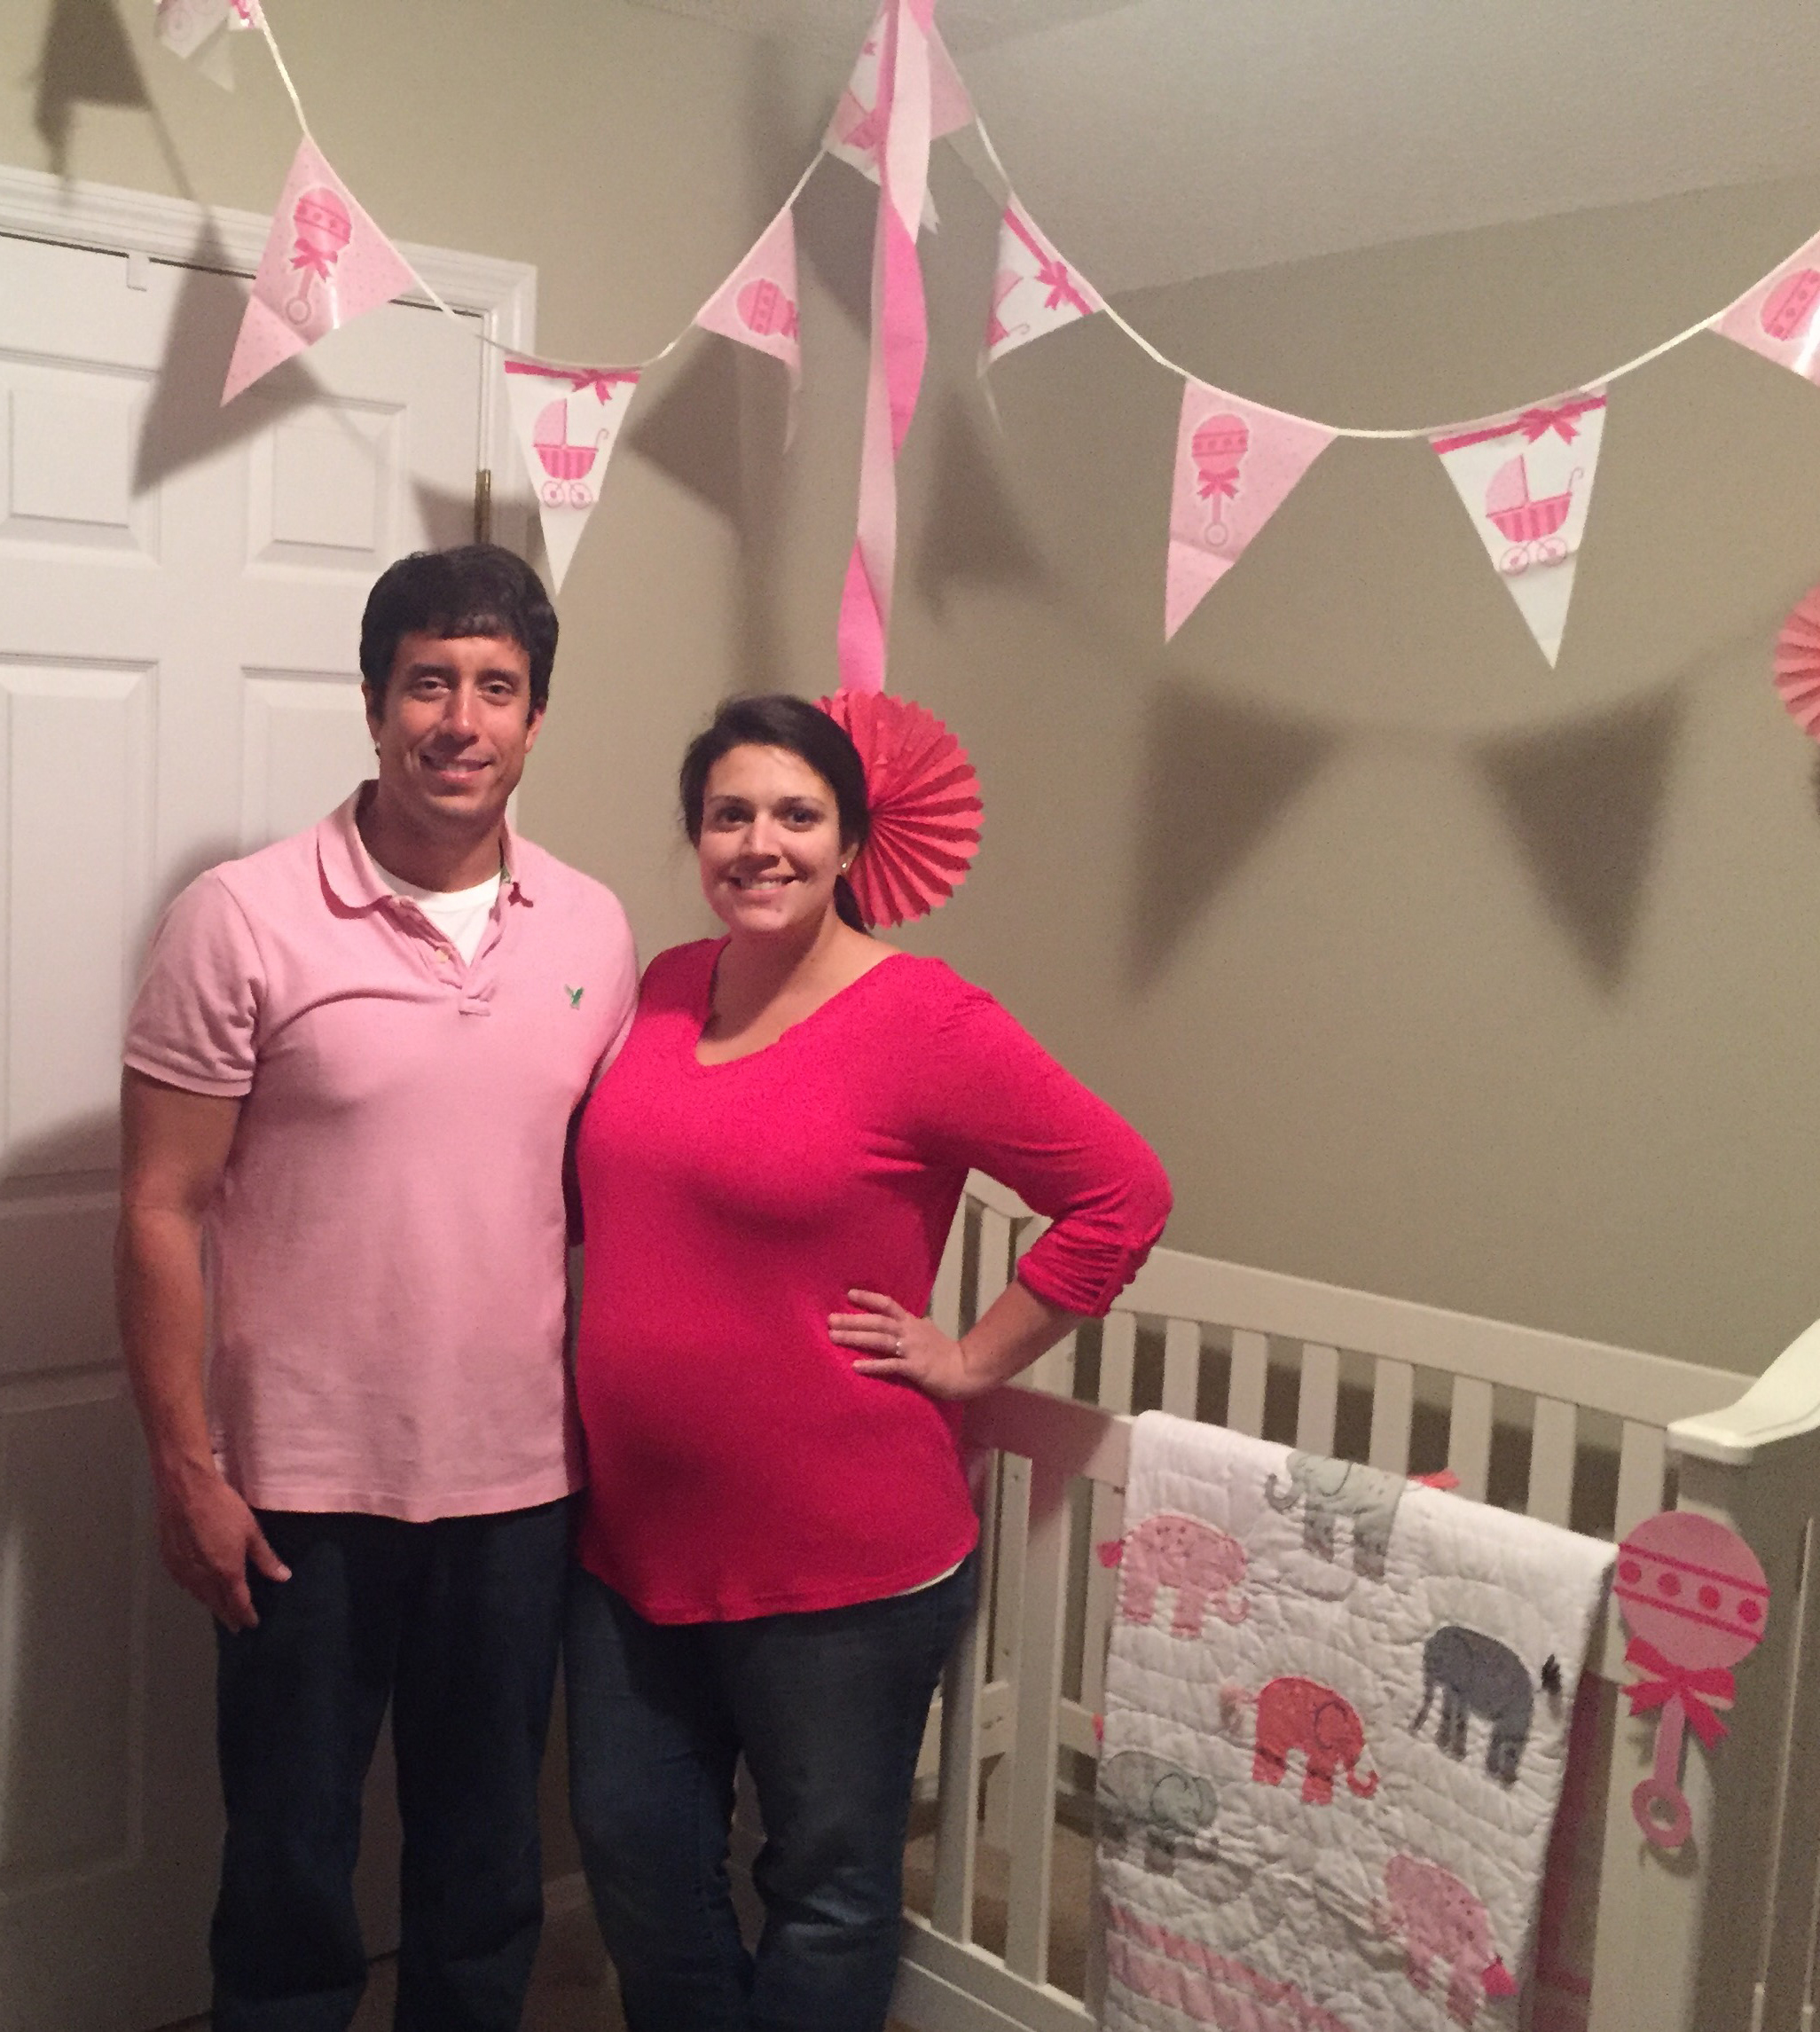 Sidney and I are thrilled to be having a baby girl.